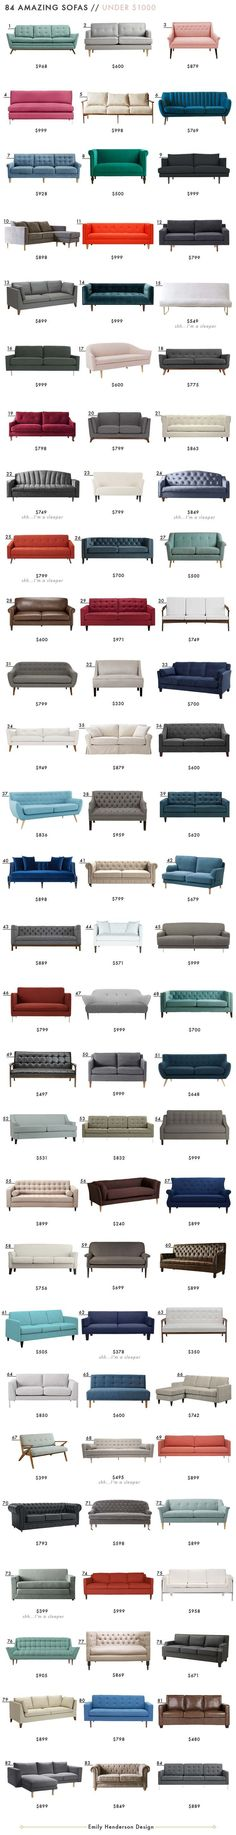 Types of Sofas - The furthermost types of sofas are the two-seater, considered for seating two people, and the sofa, which has two or additional pillow . Design Furniture, Sofa Design, Home Furniture, Plywood Furniture, Design Design, Furniture Ideas, Modern Furniture, Design Ideas, Retro Home Decor